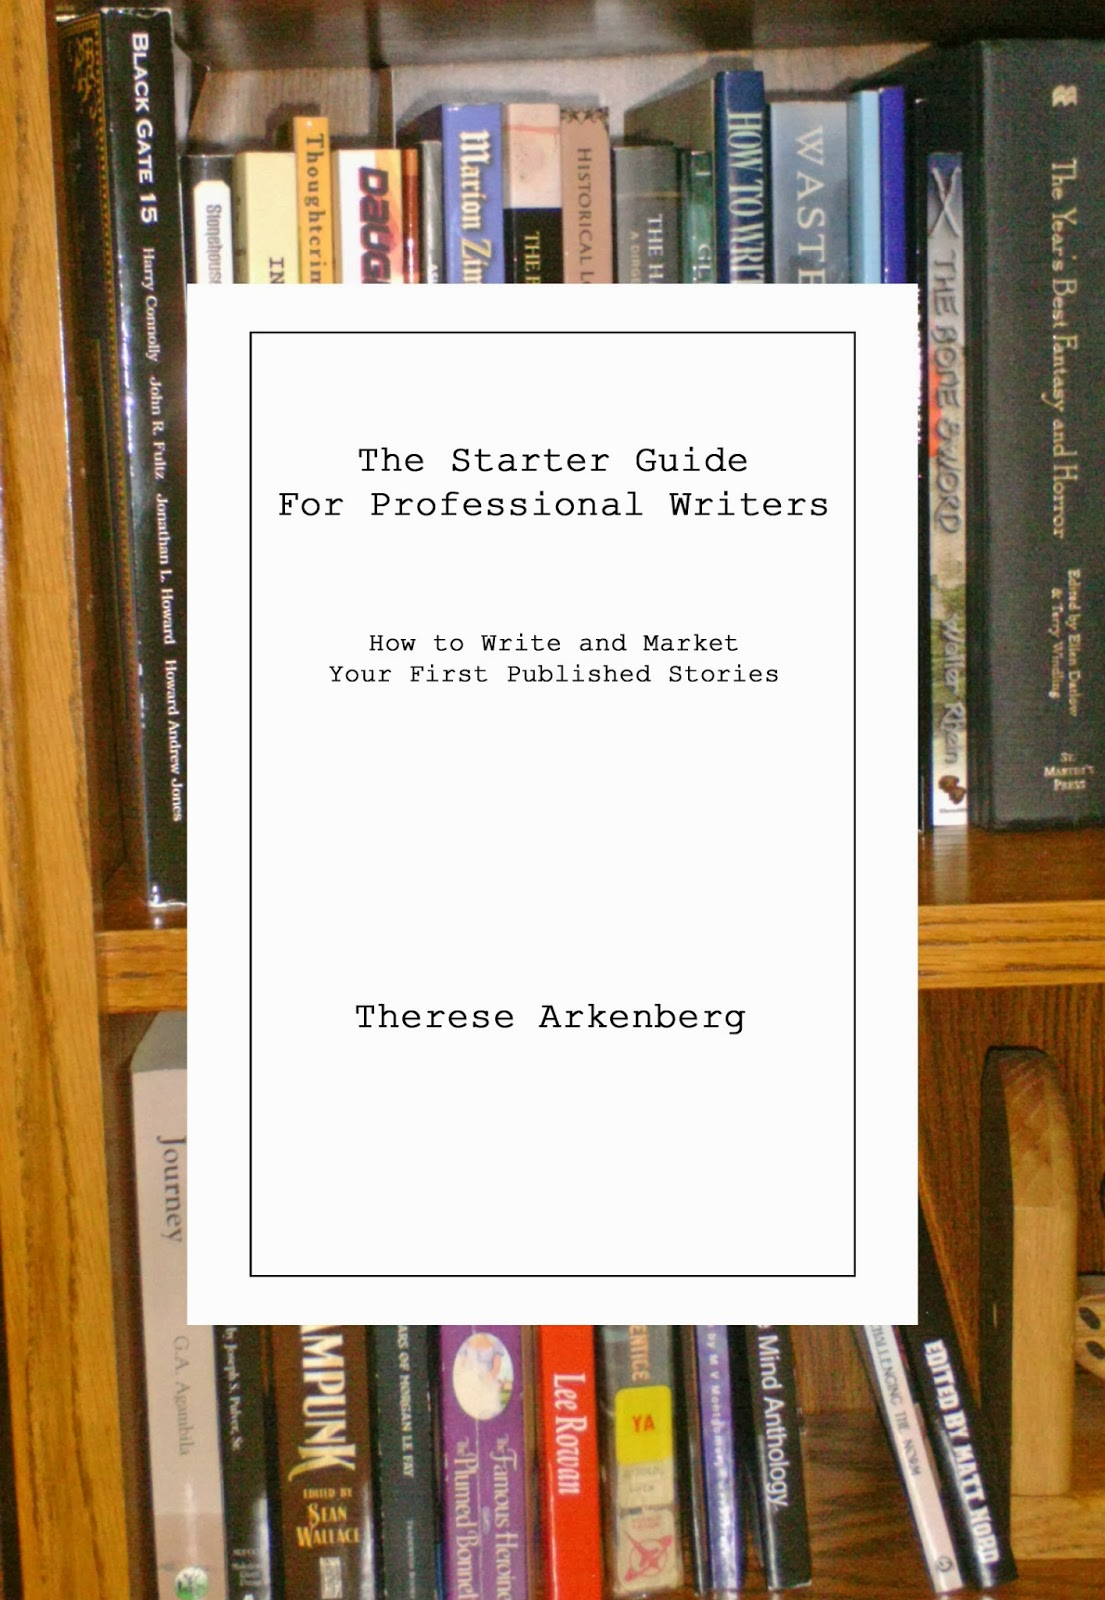 Where You Can Get the Starter Guide for Professional Writers